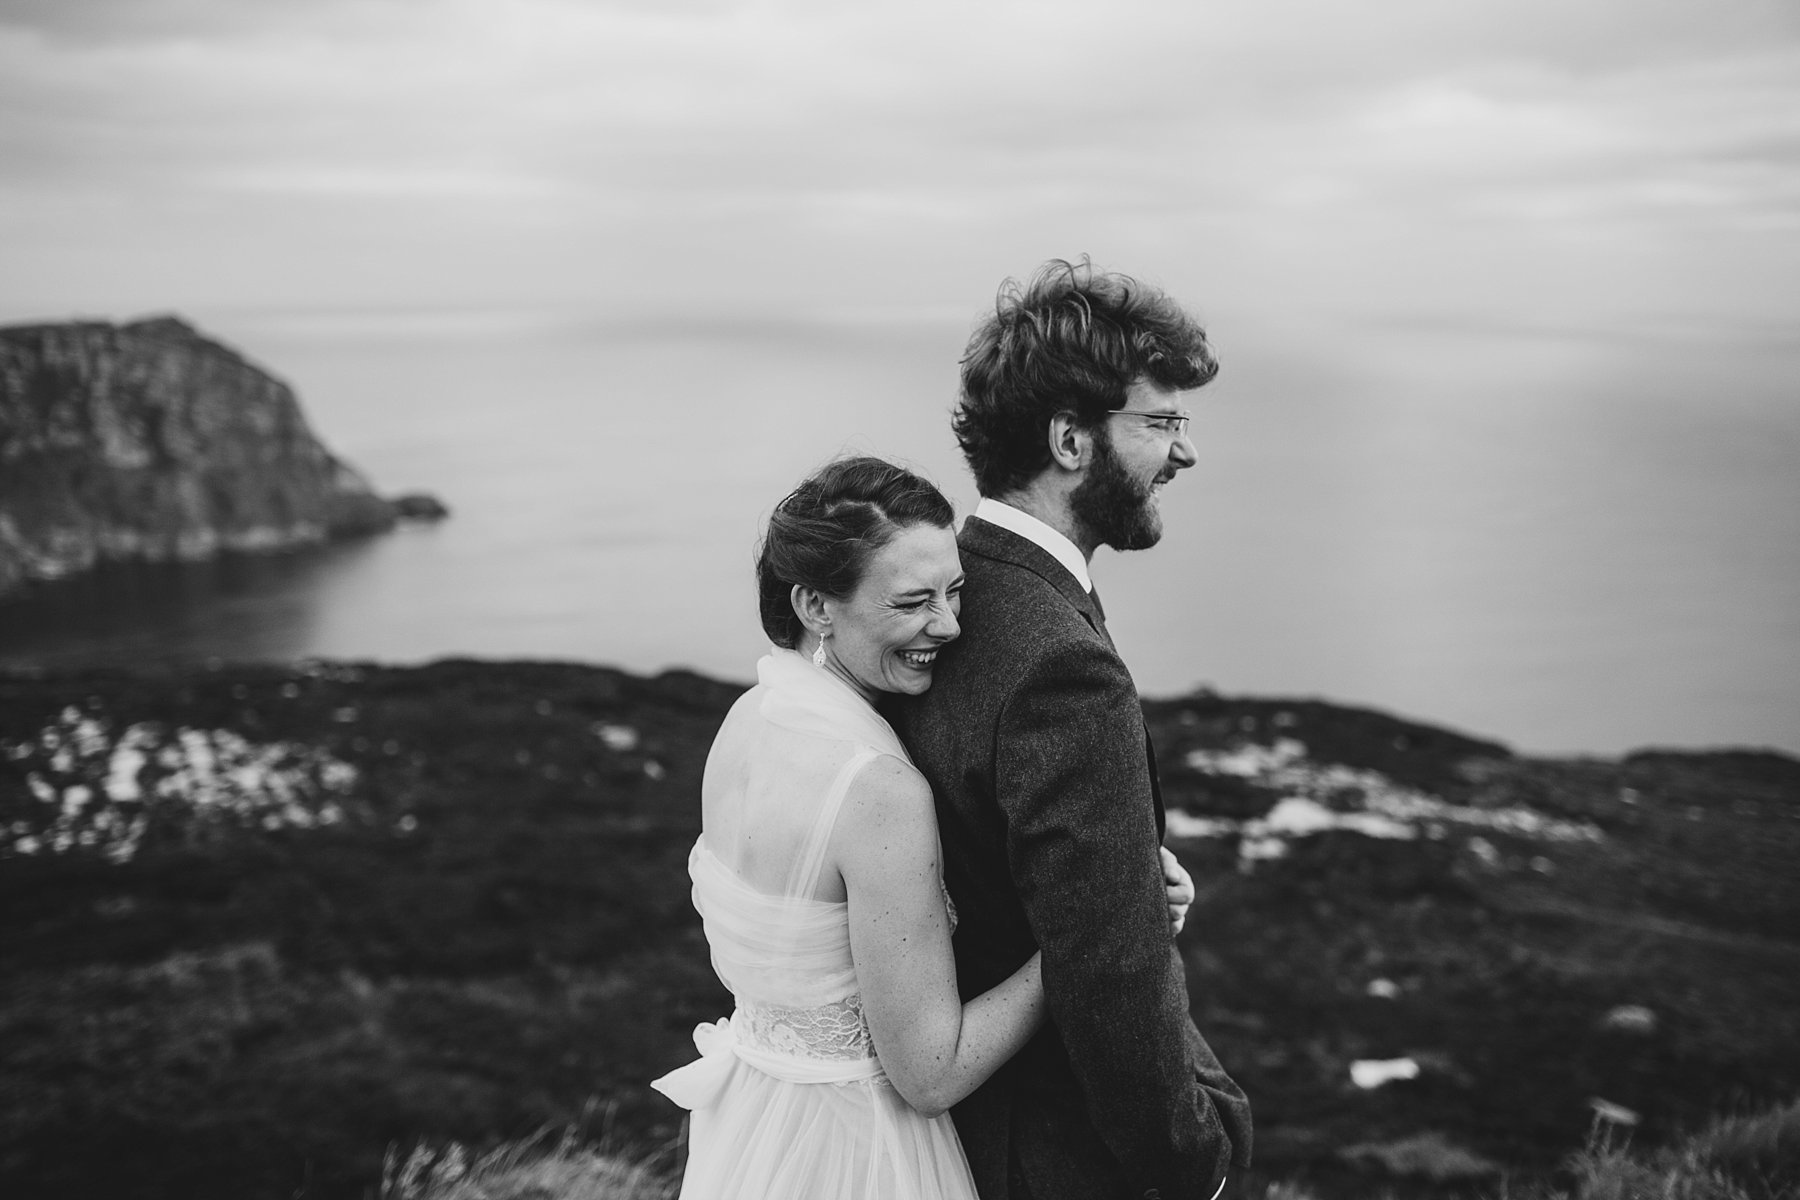 hornhead_donegak_elopement_weddings_0081